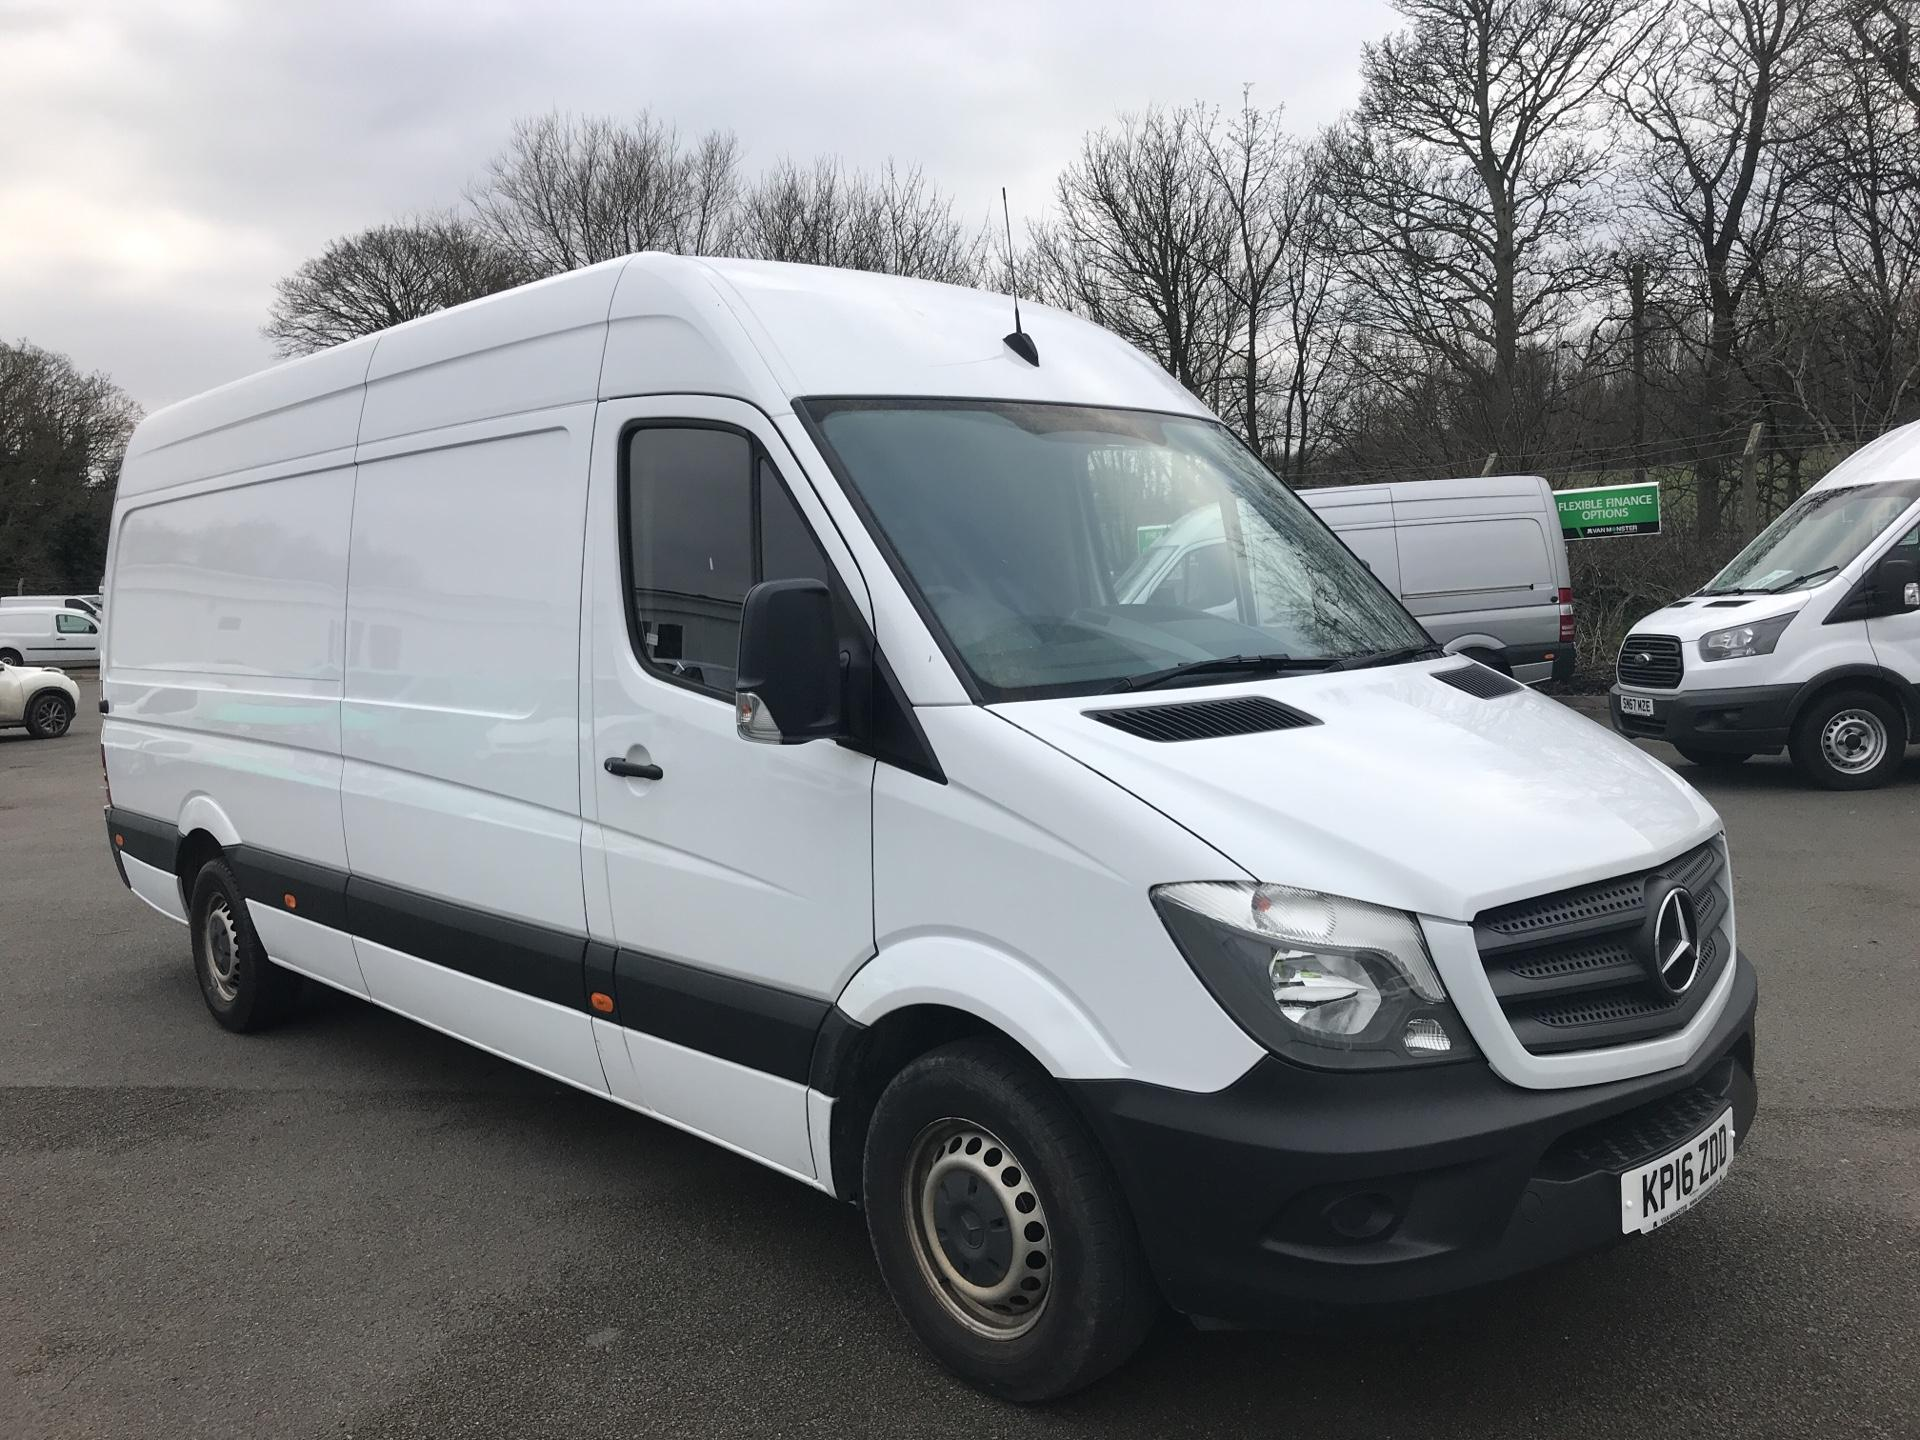 2016 Mercedes-Benz Sprinter 313 LWB H/R EURO 5 *VALUE RANGE VEHICLE - CONDITION REFLECTED IN PRICE* (KP16ZDD)